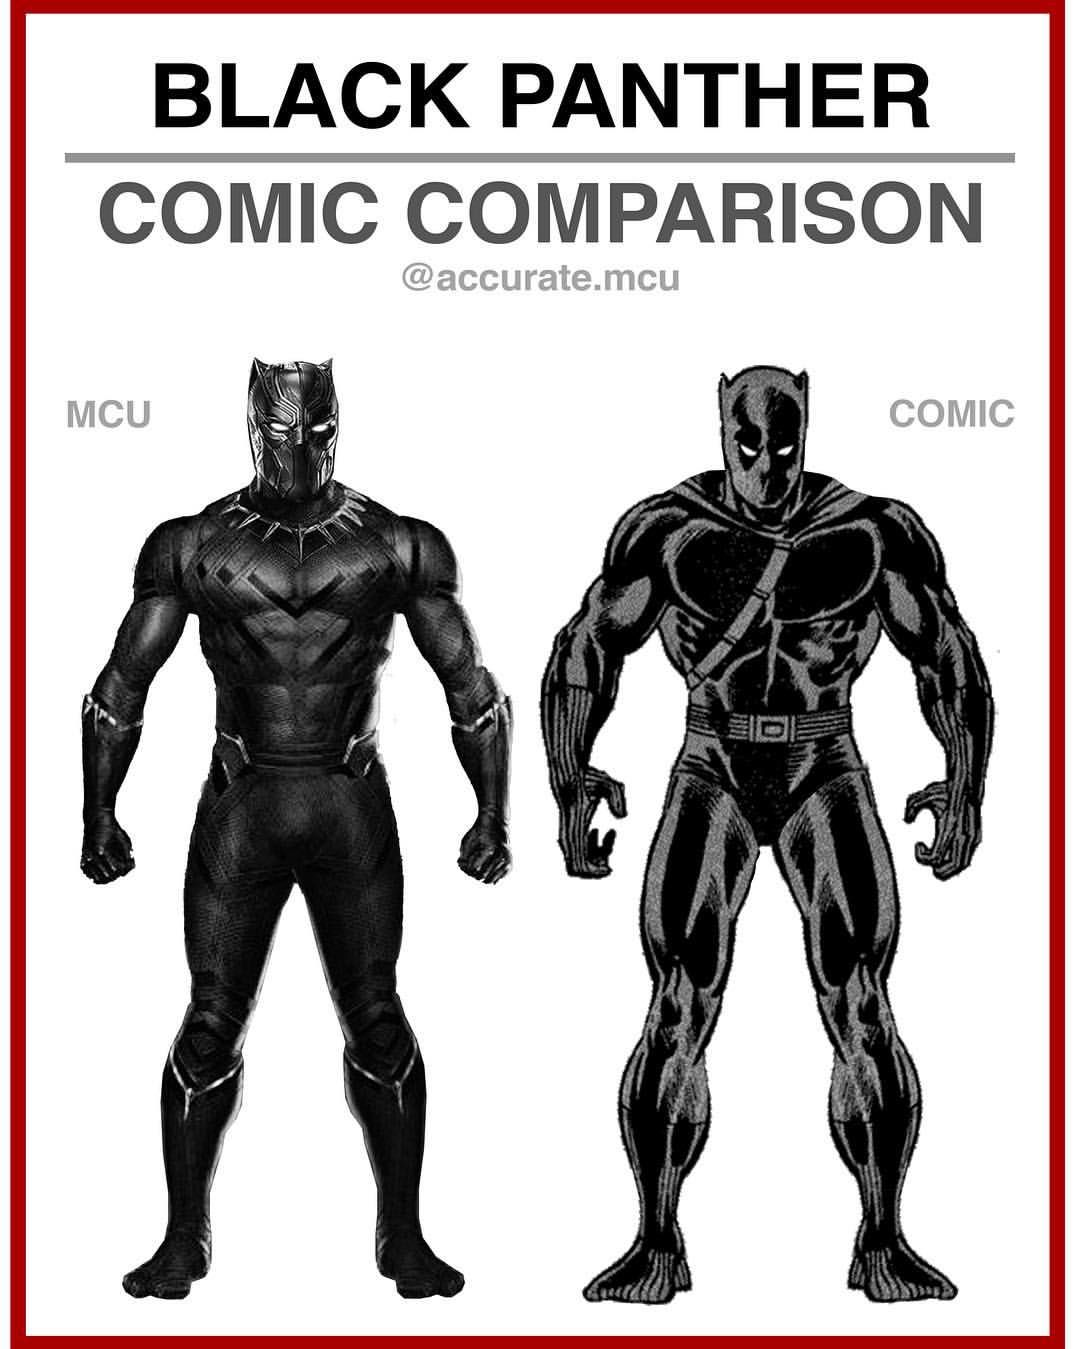 the old black panther versus the The 2010 miniseries stars djimon hounsou, kerry washington, and alfre woodard with black panther fever still in full swing, marvel just uploaded the old animated miniseries to youtube the 2010 cartoon adapted a comic by writer reginald hudlin and artist john romita jr, covering t'challa's.